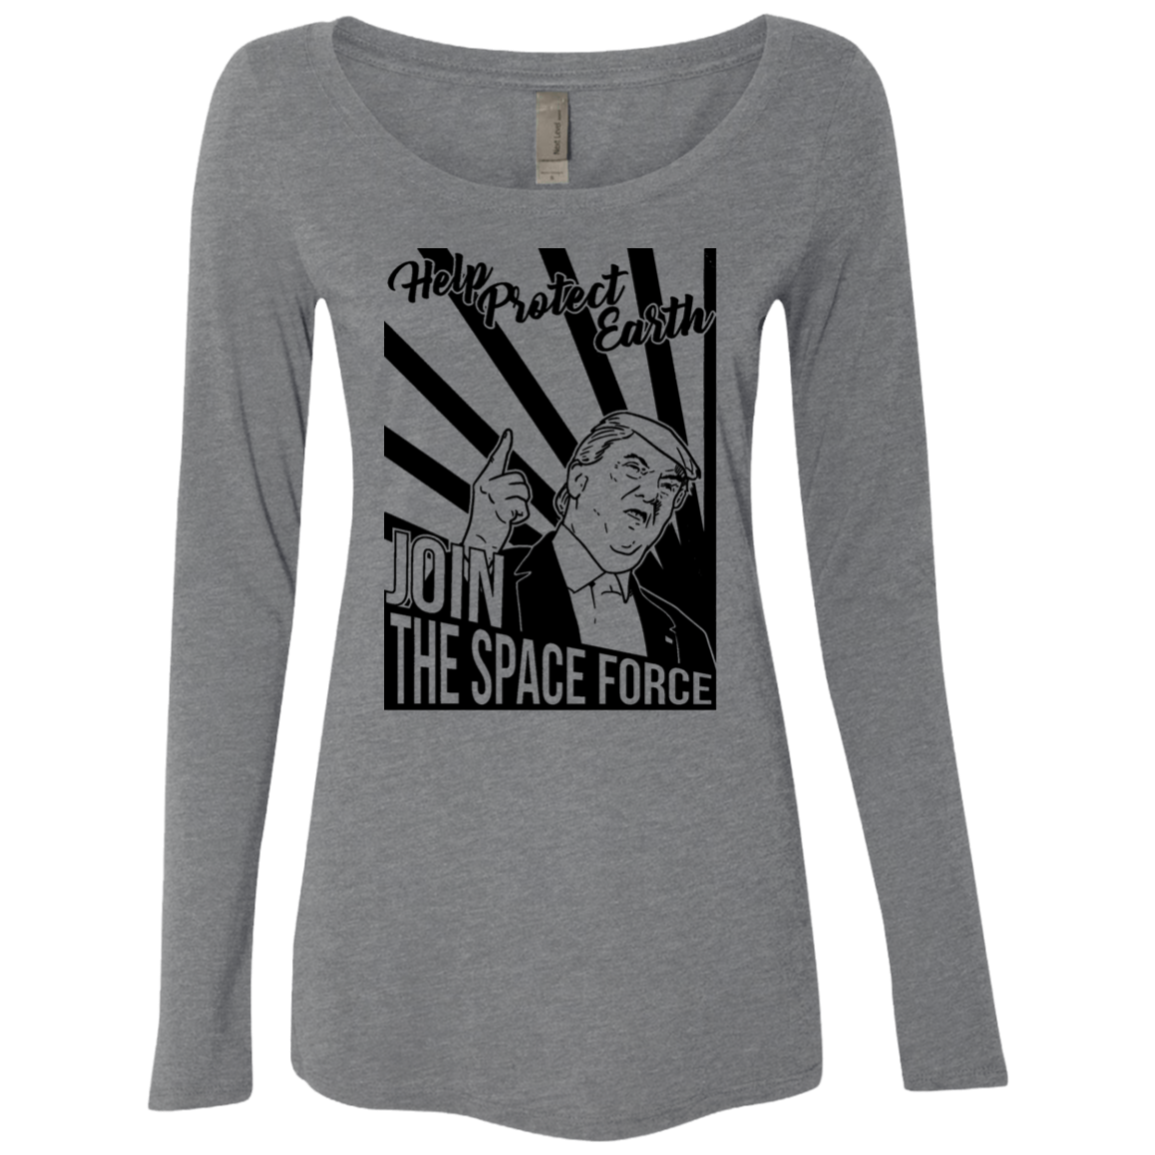 Help Protect Earth Join The Space Force Women's Long Sleeve Tee